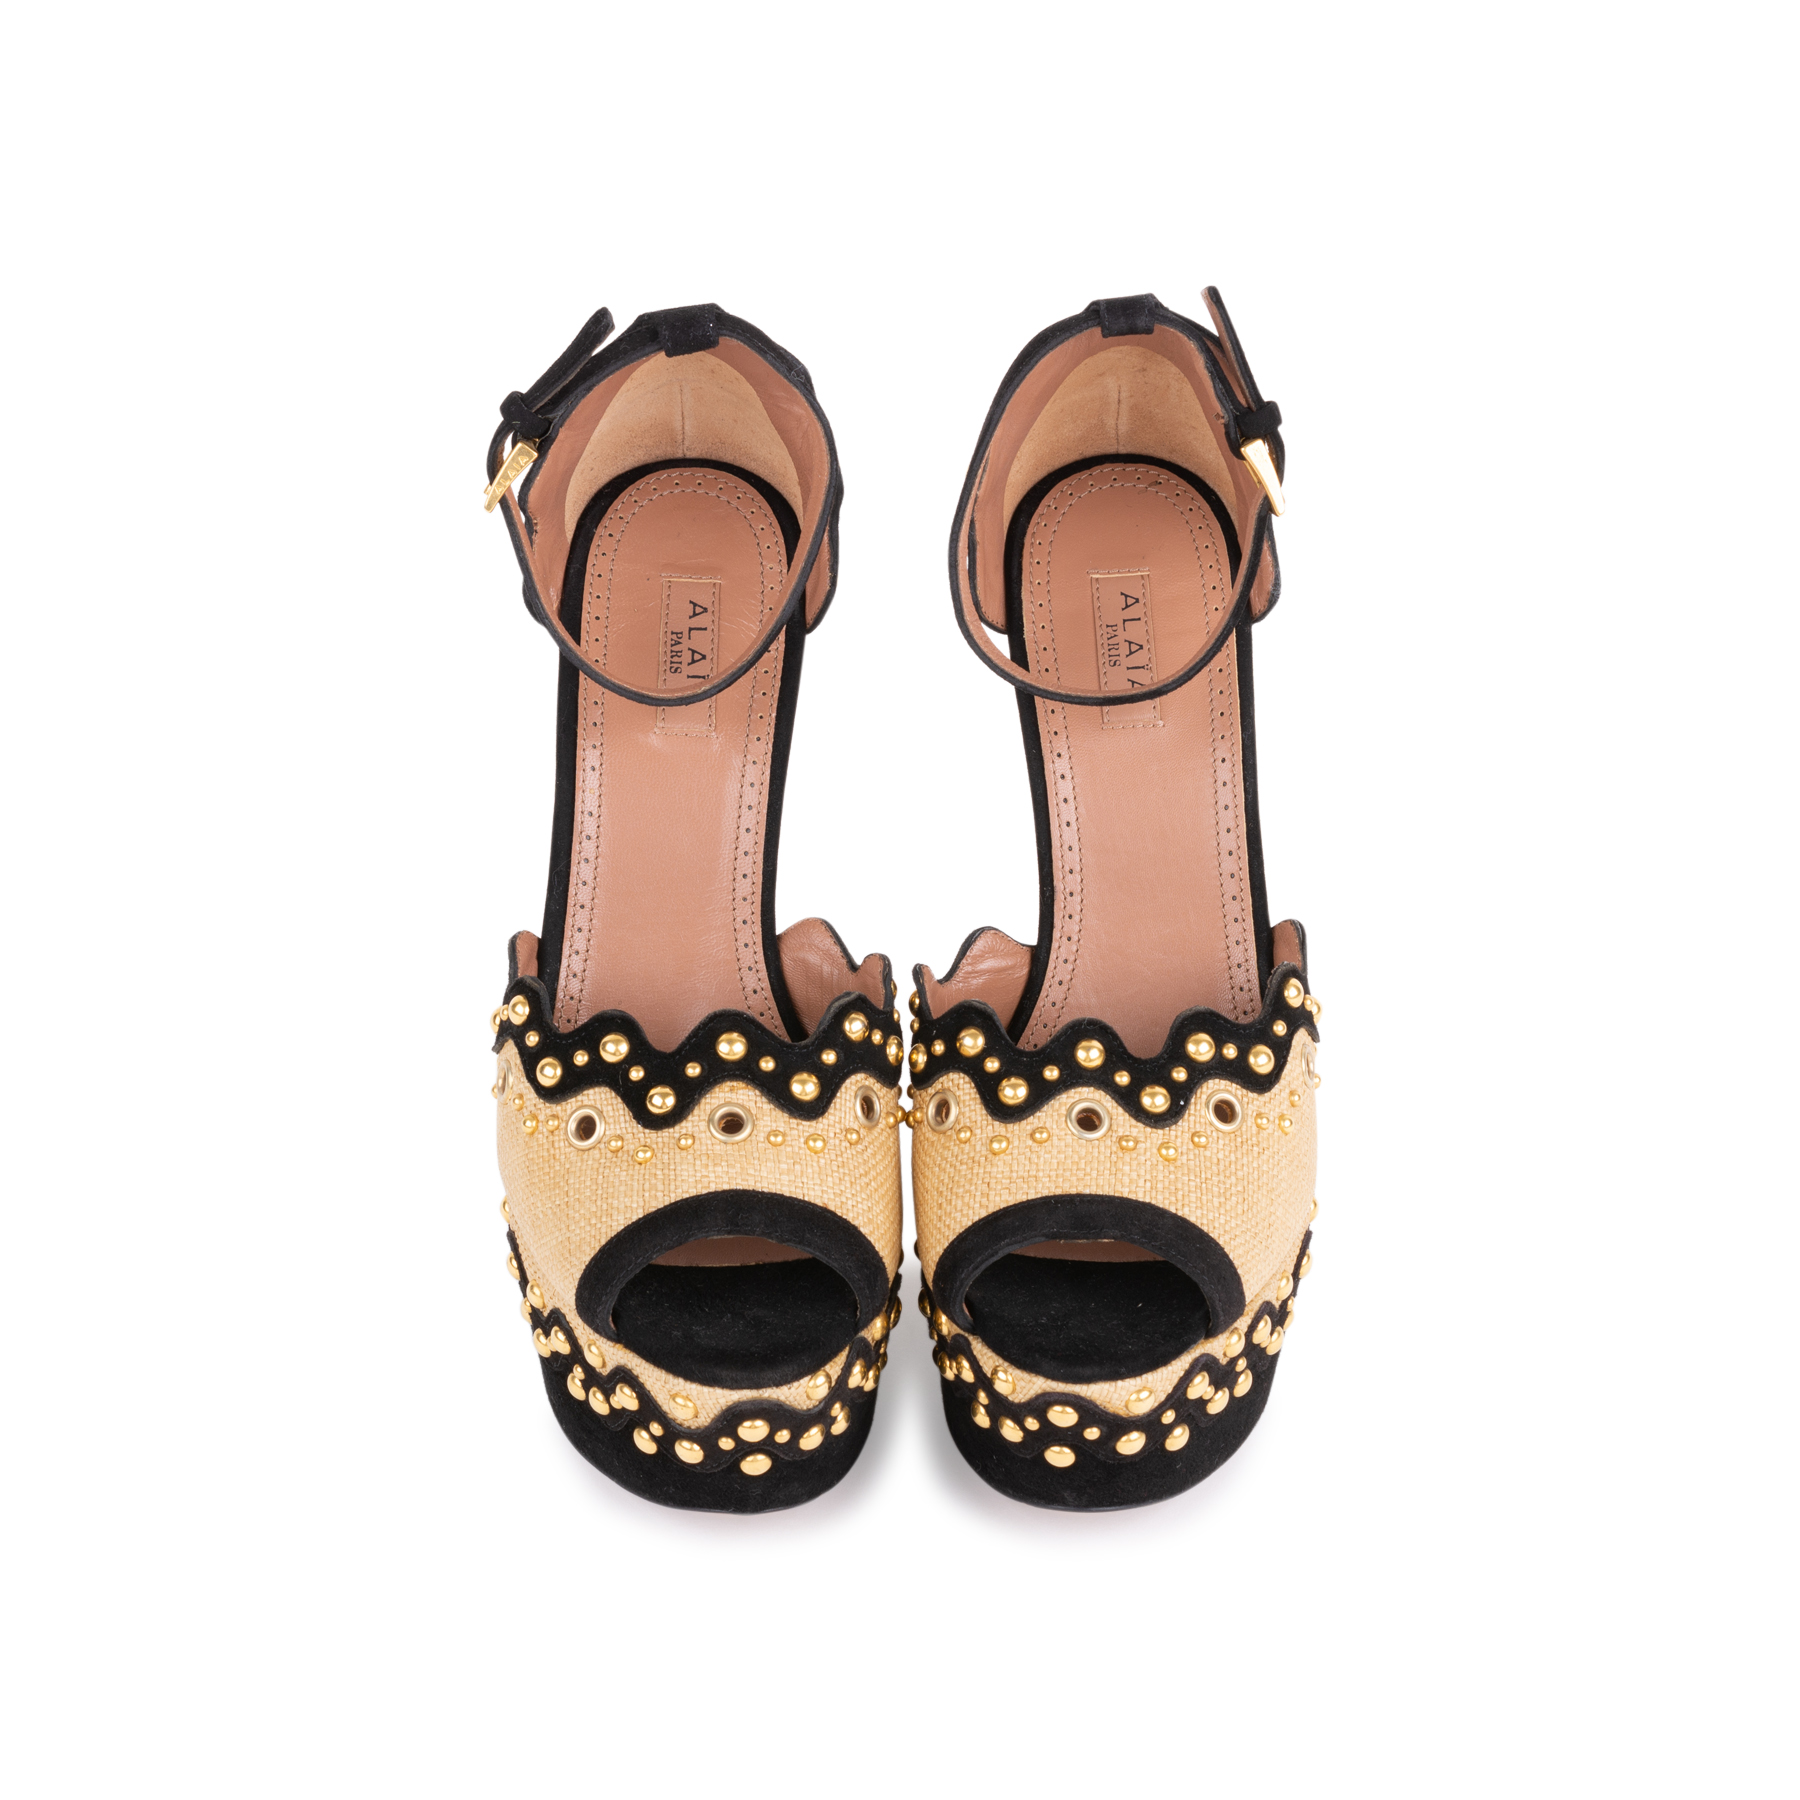 88d4989b4a9 Authentic Second Hand Azzedine Alaïa Studded Raffia Wedge Sandals  (PSS-049-00074)